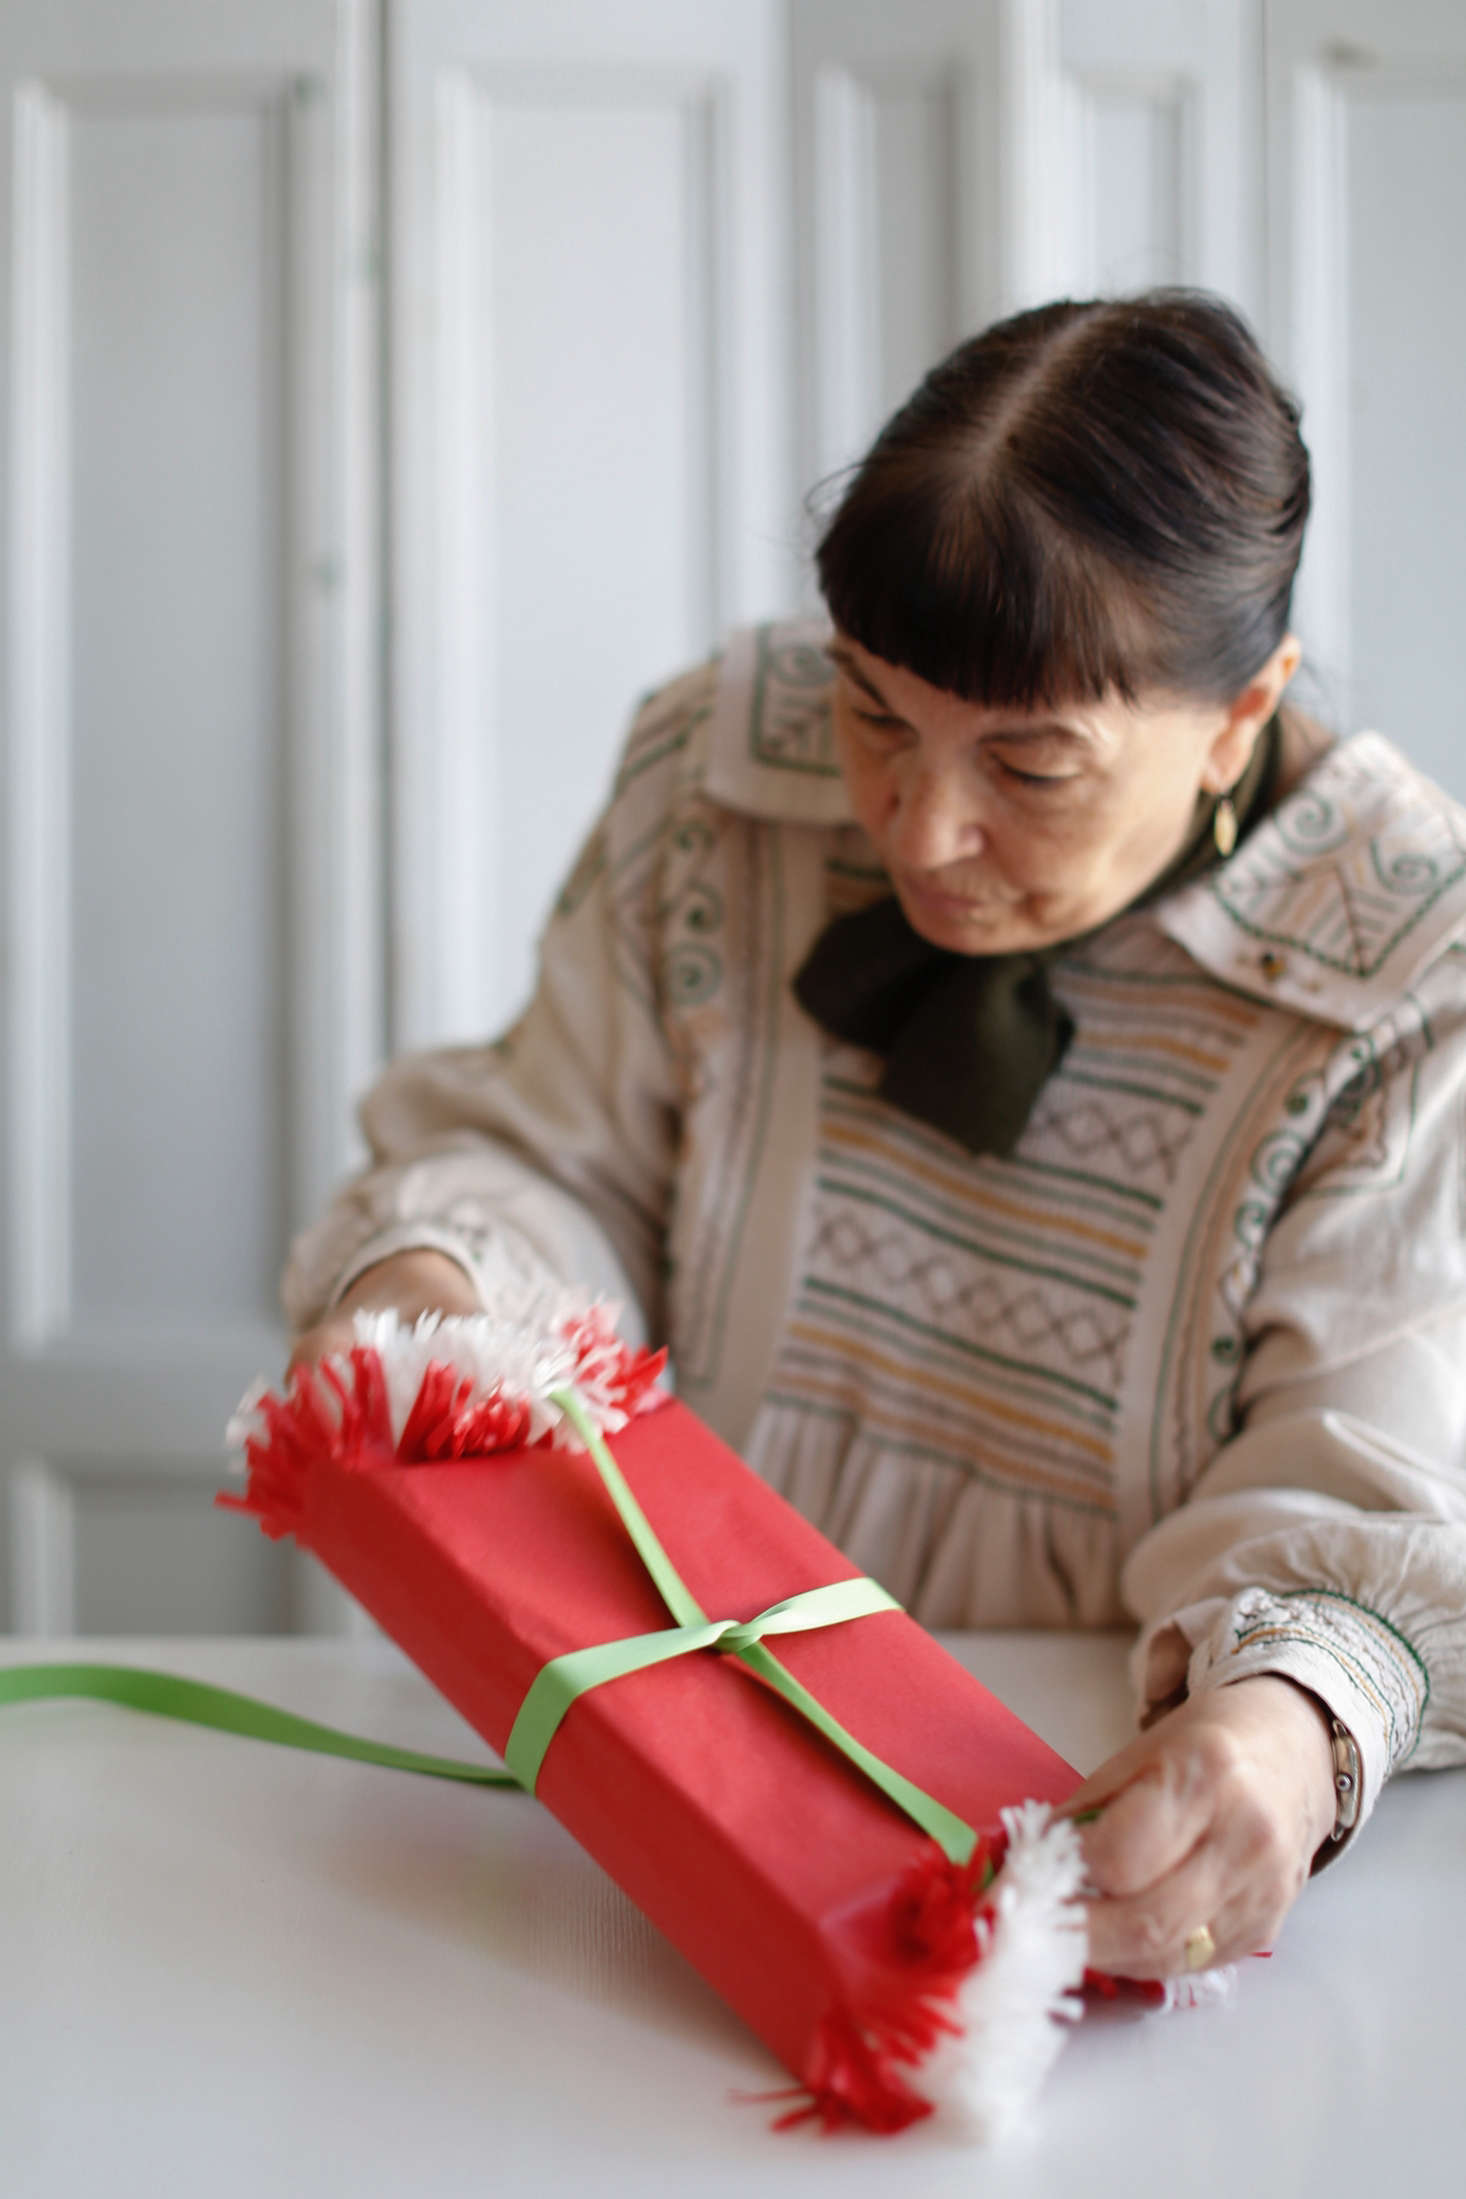 Step 3: Wrap a single, long piece of ribbon around the gift, starting with the closed edges and ending with the fringed sides. Wrap the ribbon right over the fringed ends, securing the open ends with the ribbon.